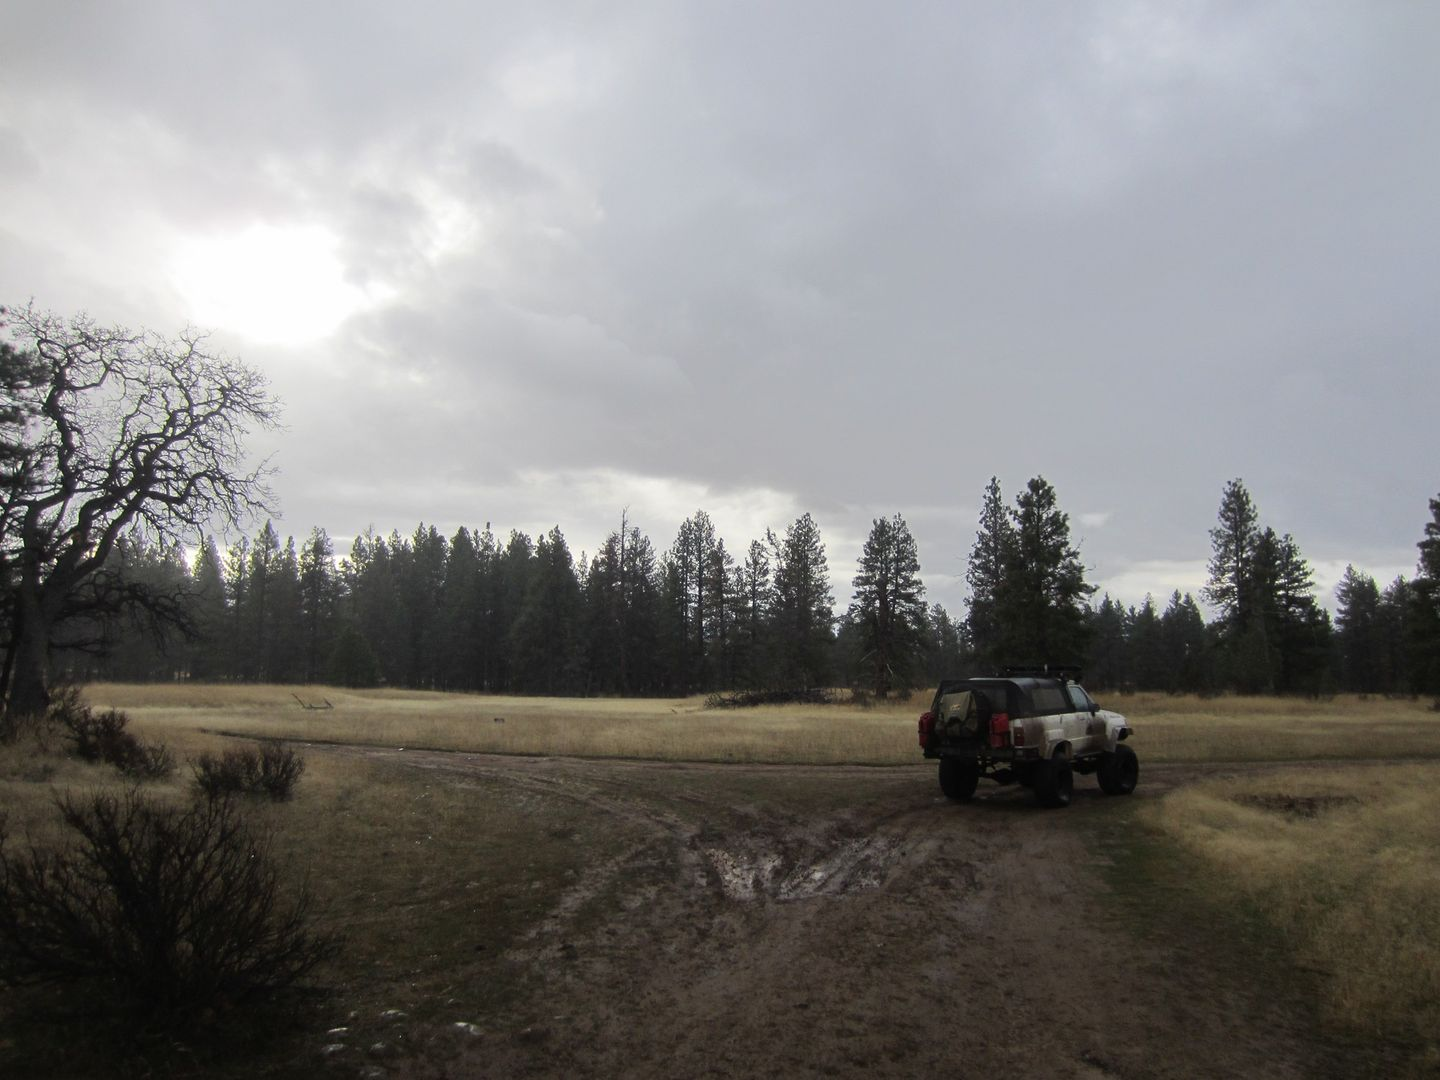 Barlow Trail - Waypoint 2: Stay Right